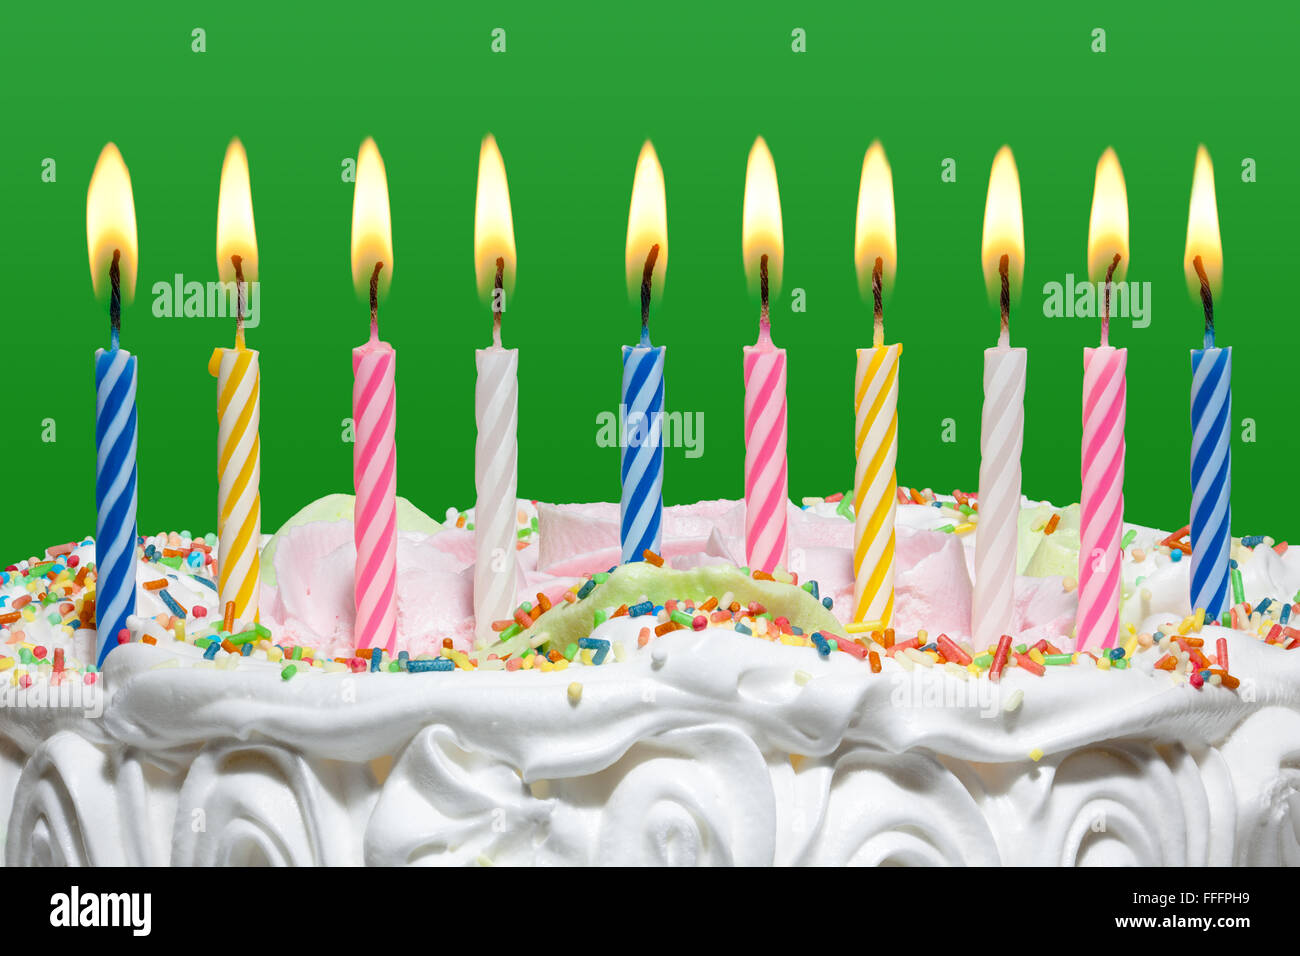 Birthday Cake Candles High Resolution Stock Photography And Images Alamy